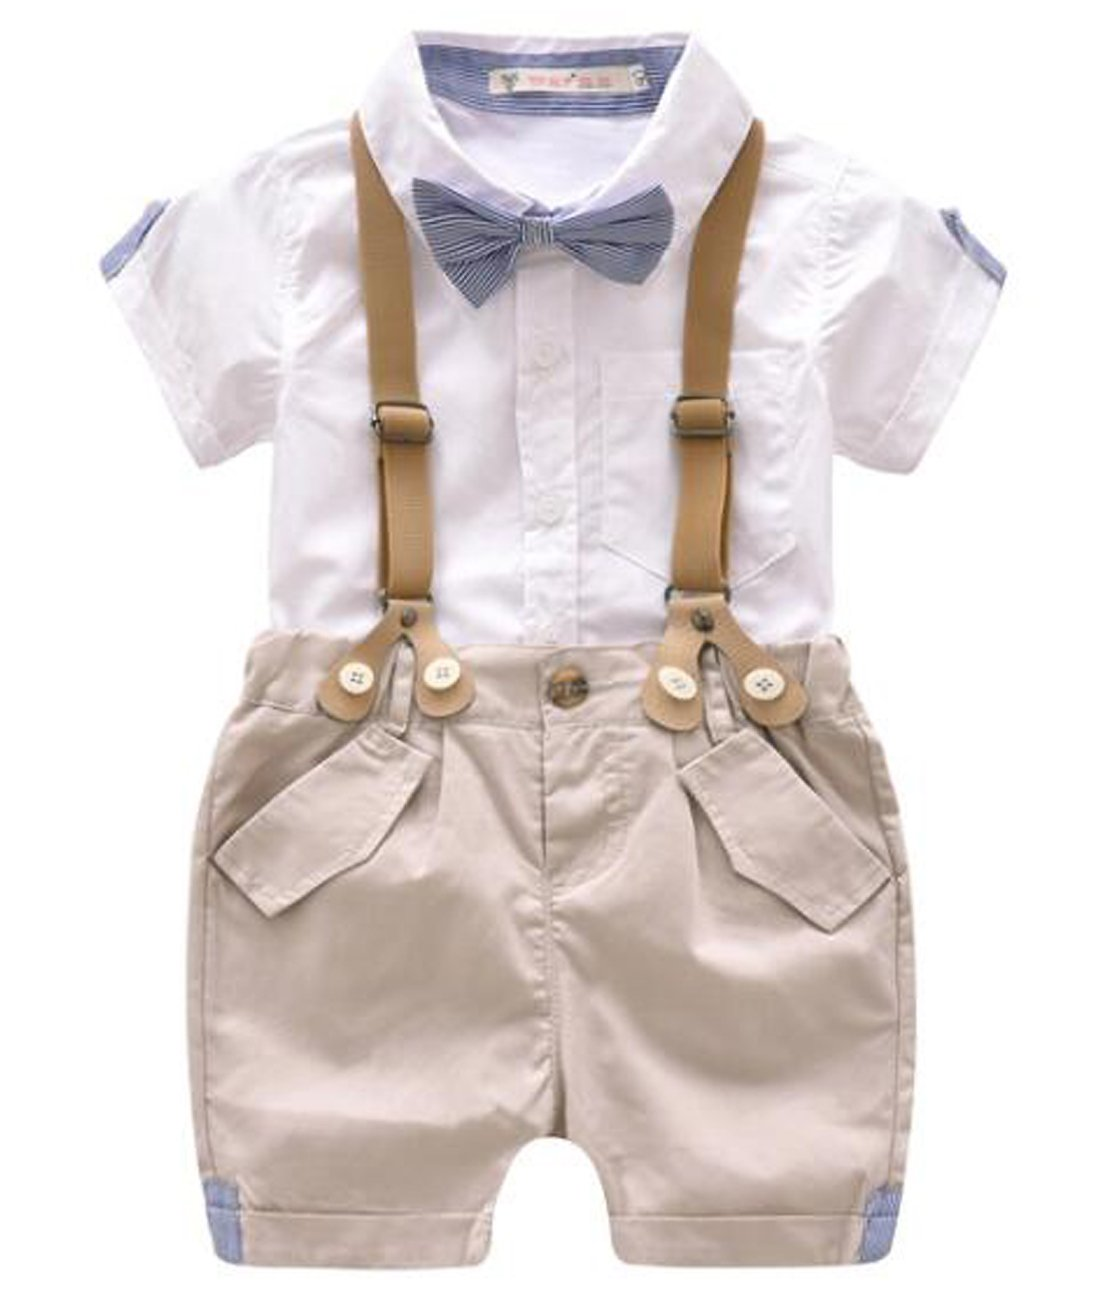 FAYALEQ Baby Boys Cotton Gentleman Bowtie Short Sleeve Shirt+Overalls Shorts Outfits Set Size 9-12 Months (White)